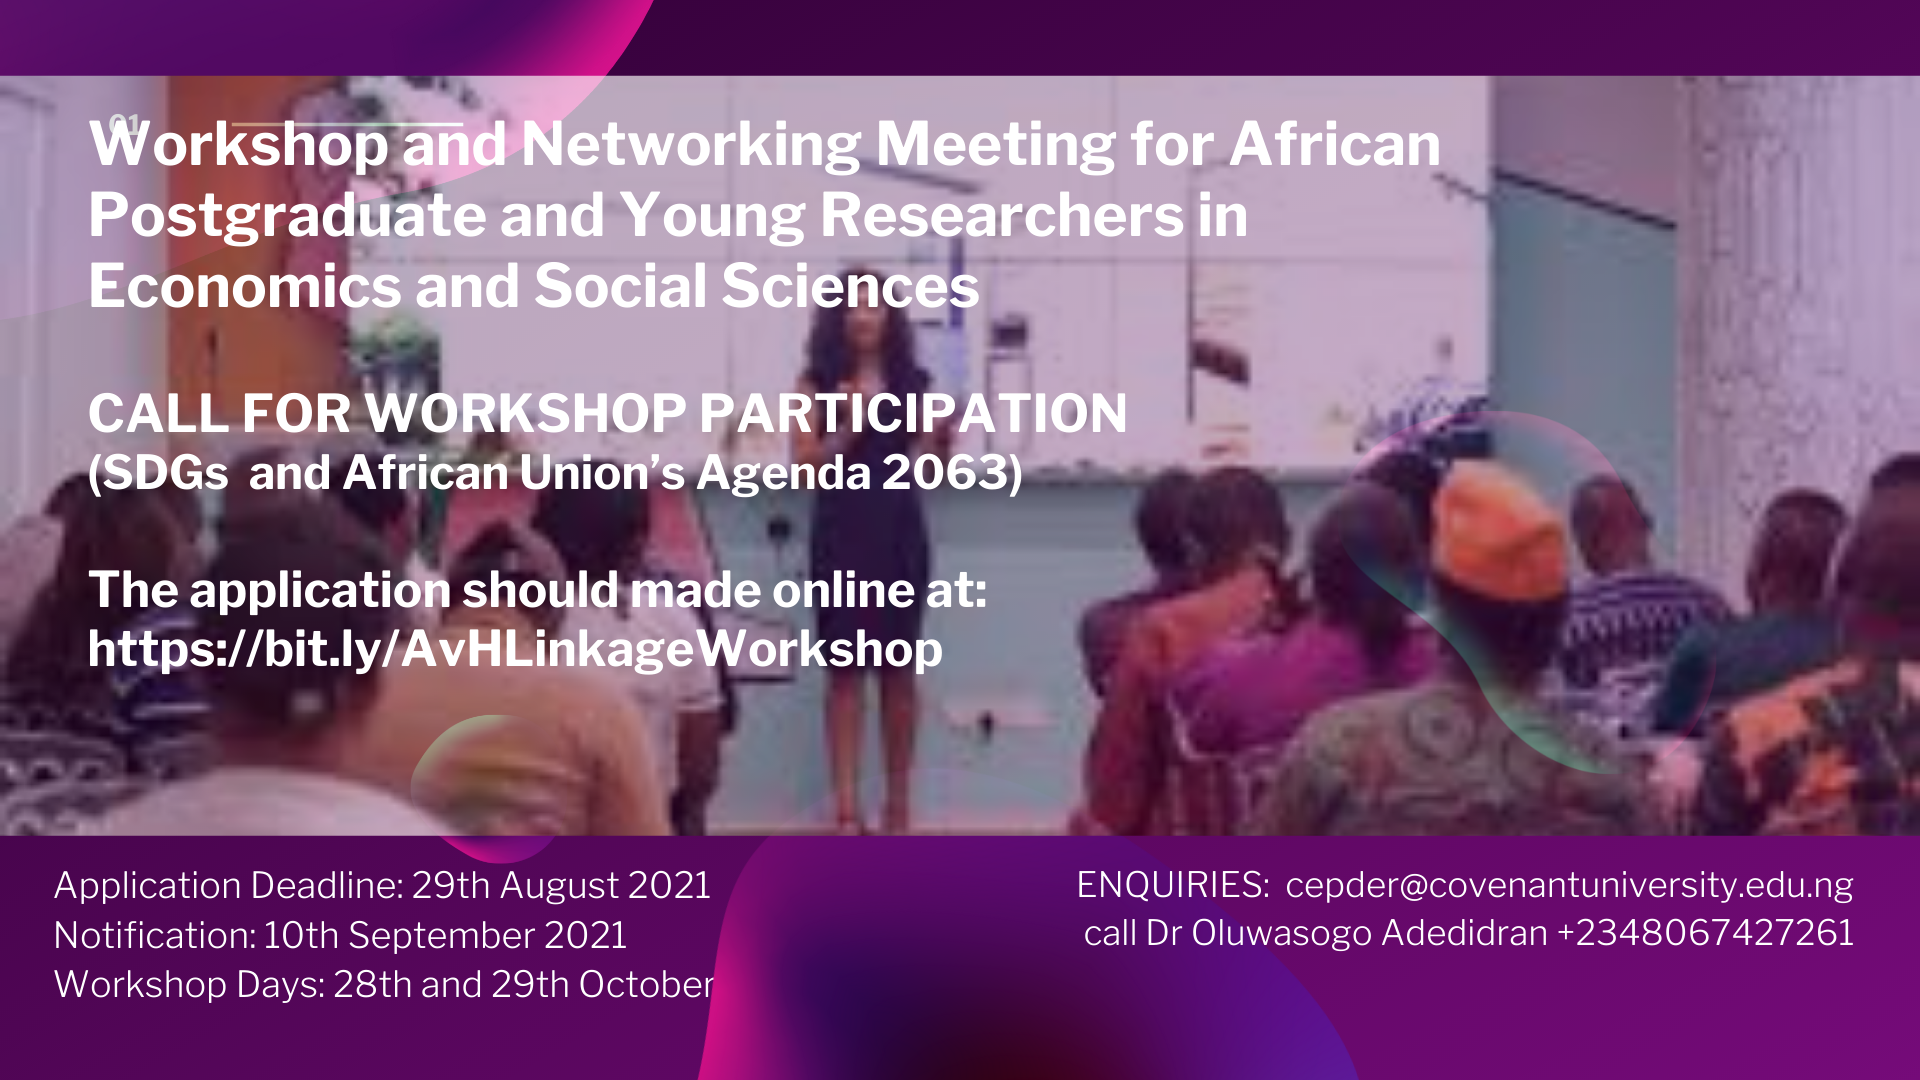 You are currently viewing Workshop and Networking Meeting for African Postgraduate and Young Researchers in Economics and Social Sciences